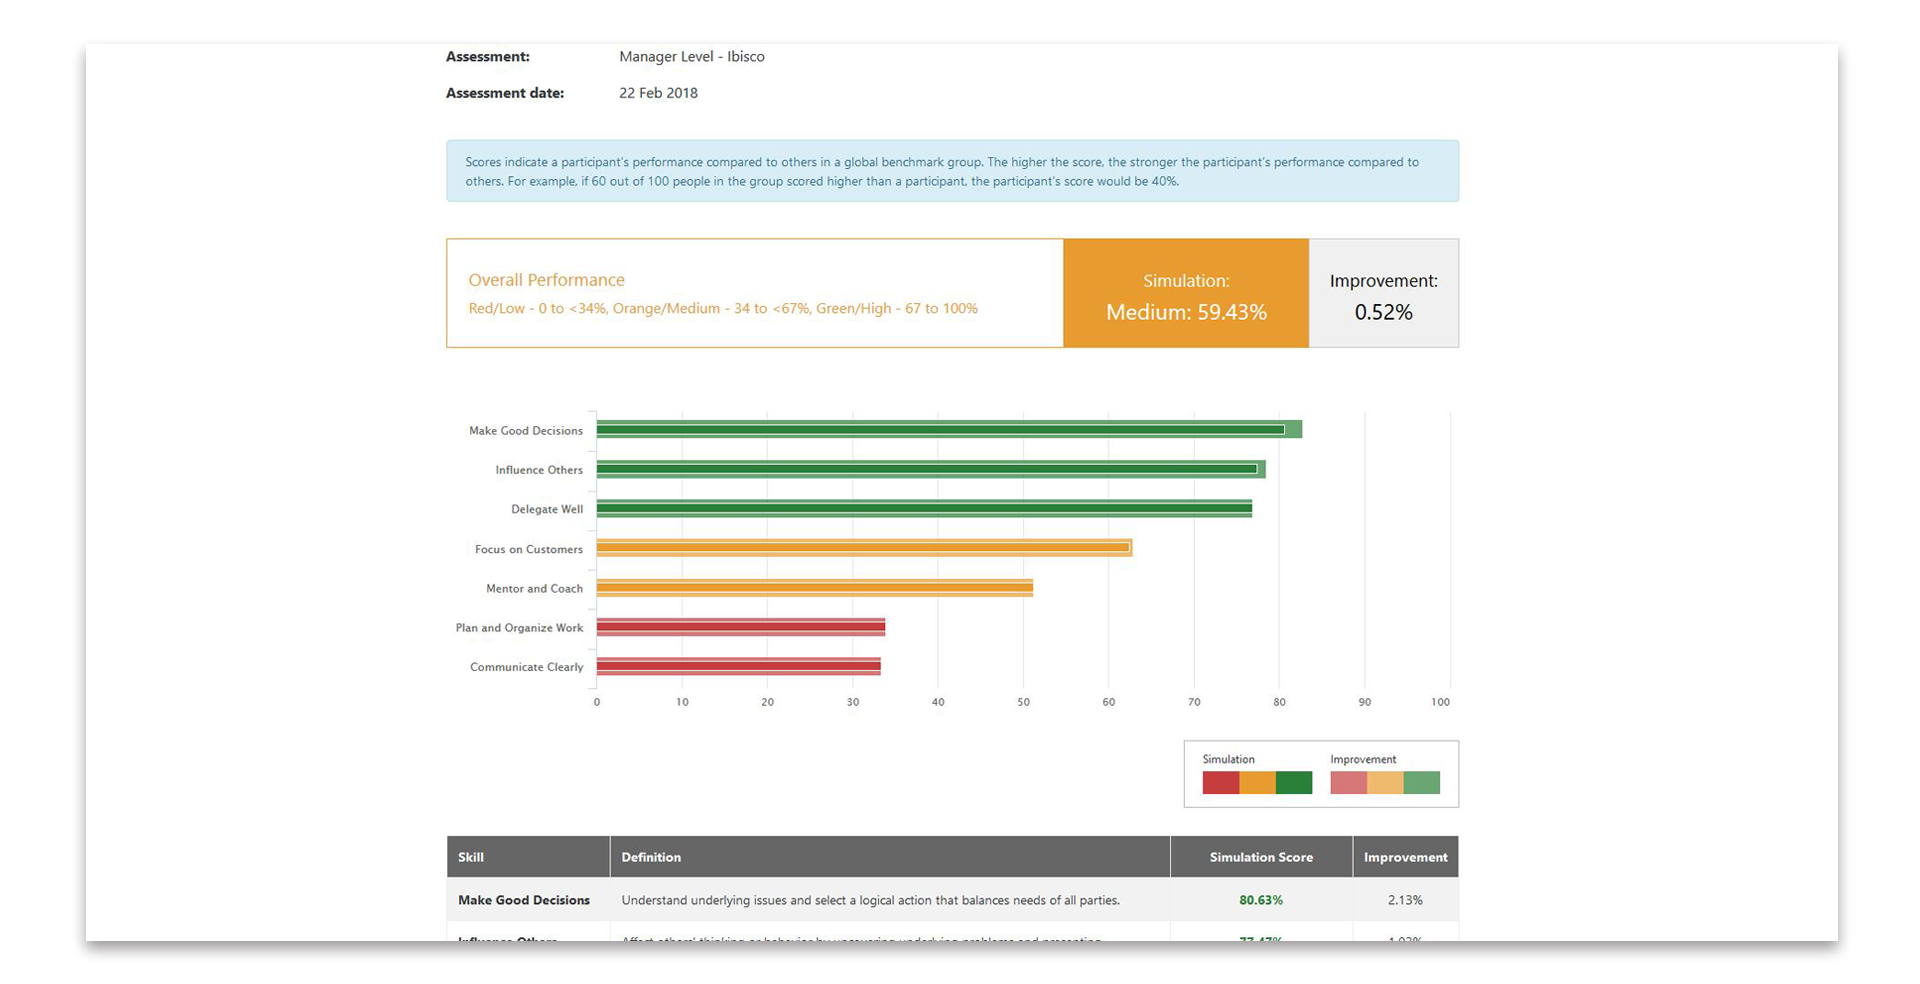 This graphic shows an example of Pinsight's analytics report, specifically the Performance section of the report.